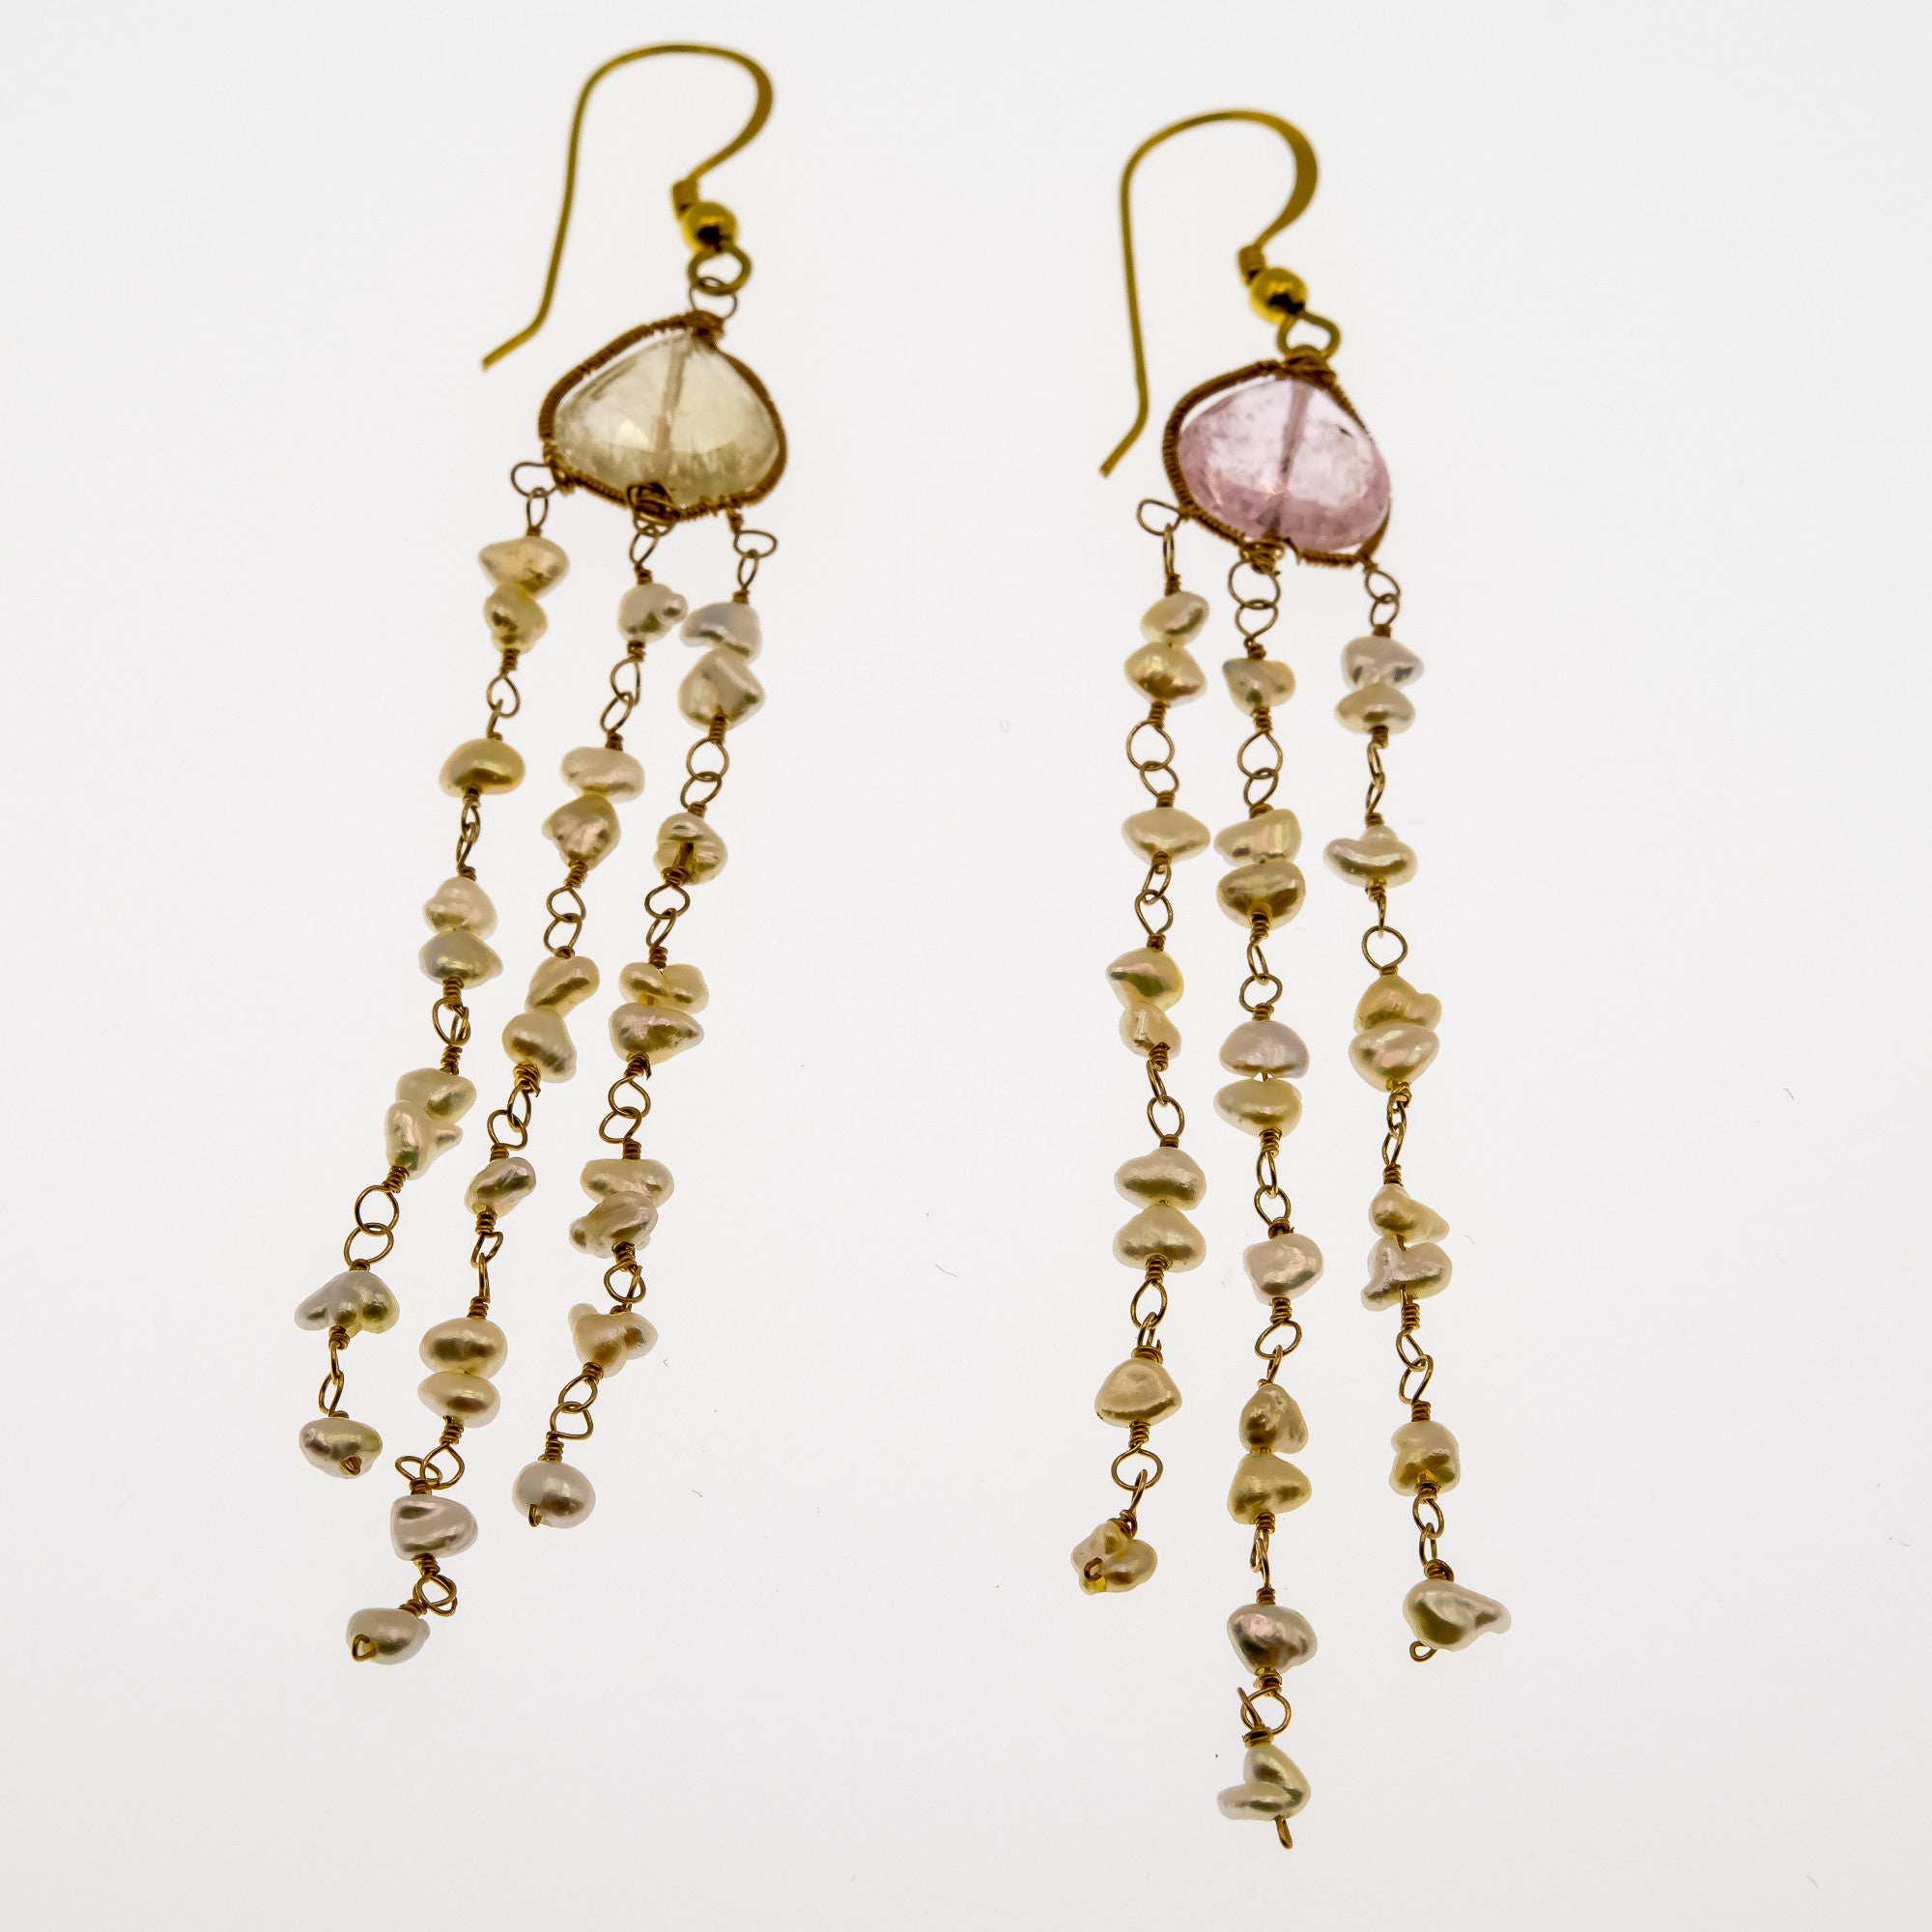 kunzite rarities tourmaline estate products genuine rose rachel antique gold pearl earrings shot yellow pink nc and pale